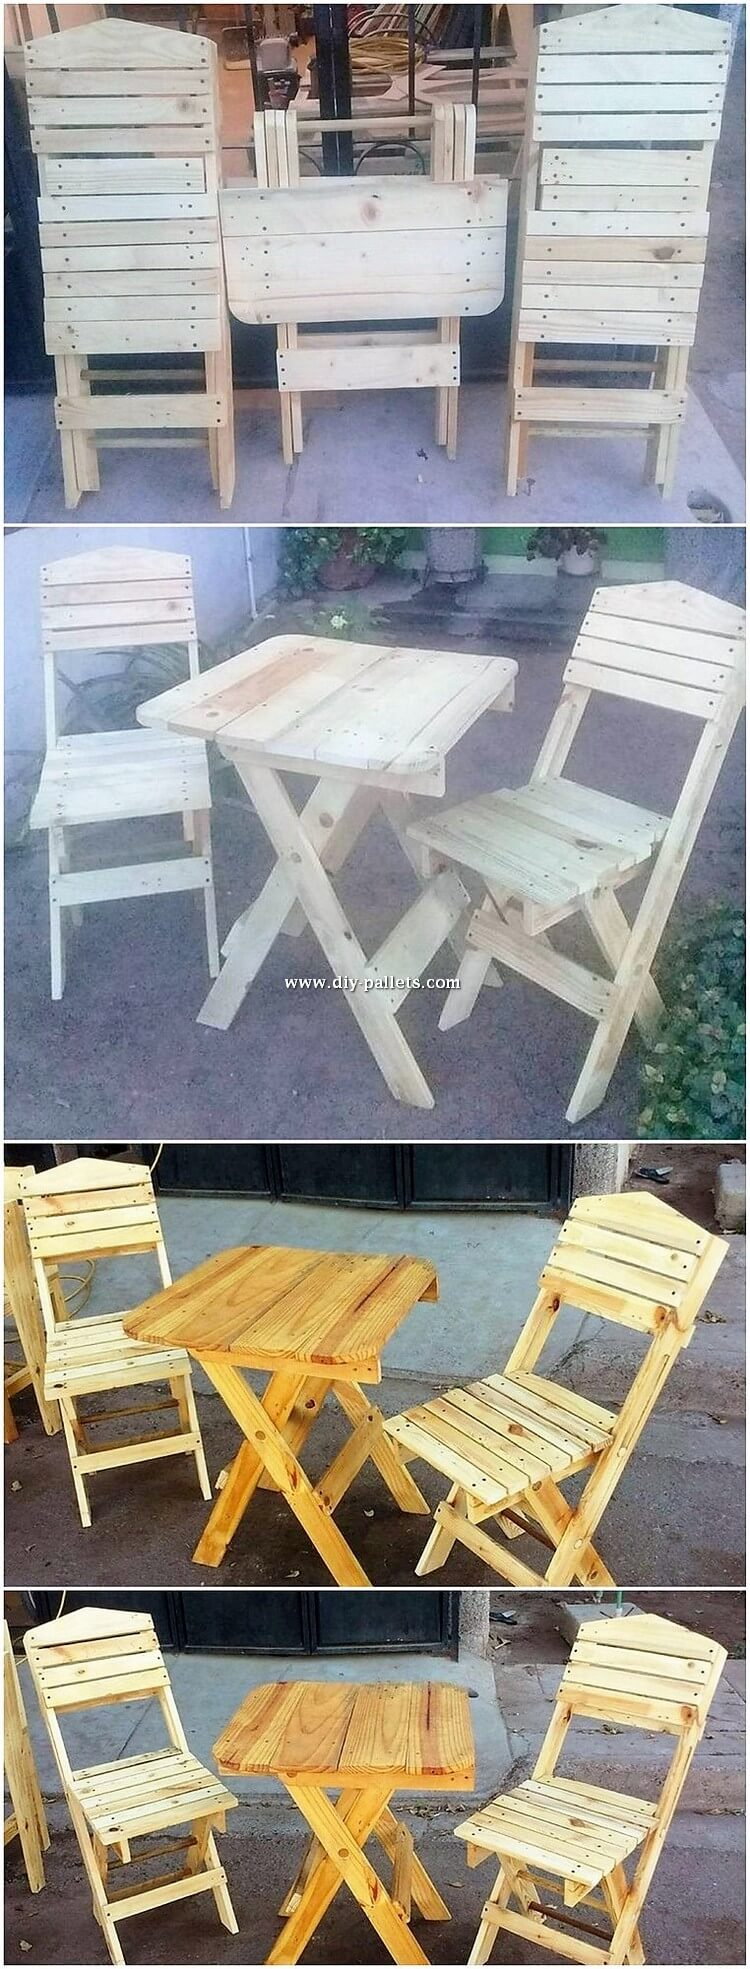 Pallet Folding Chairs and Table